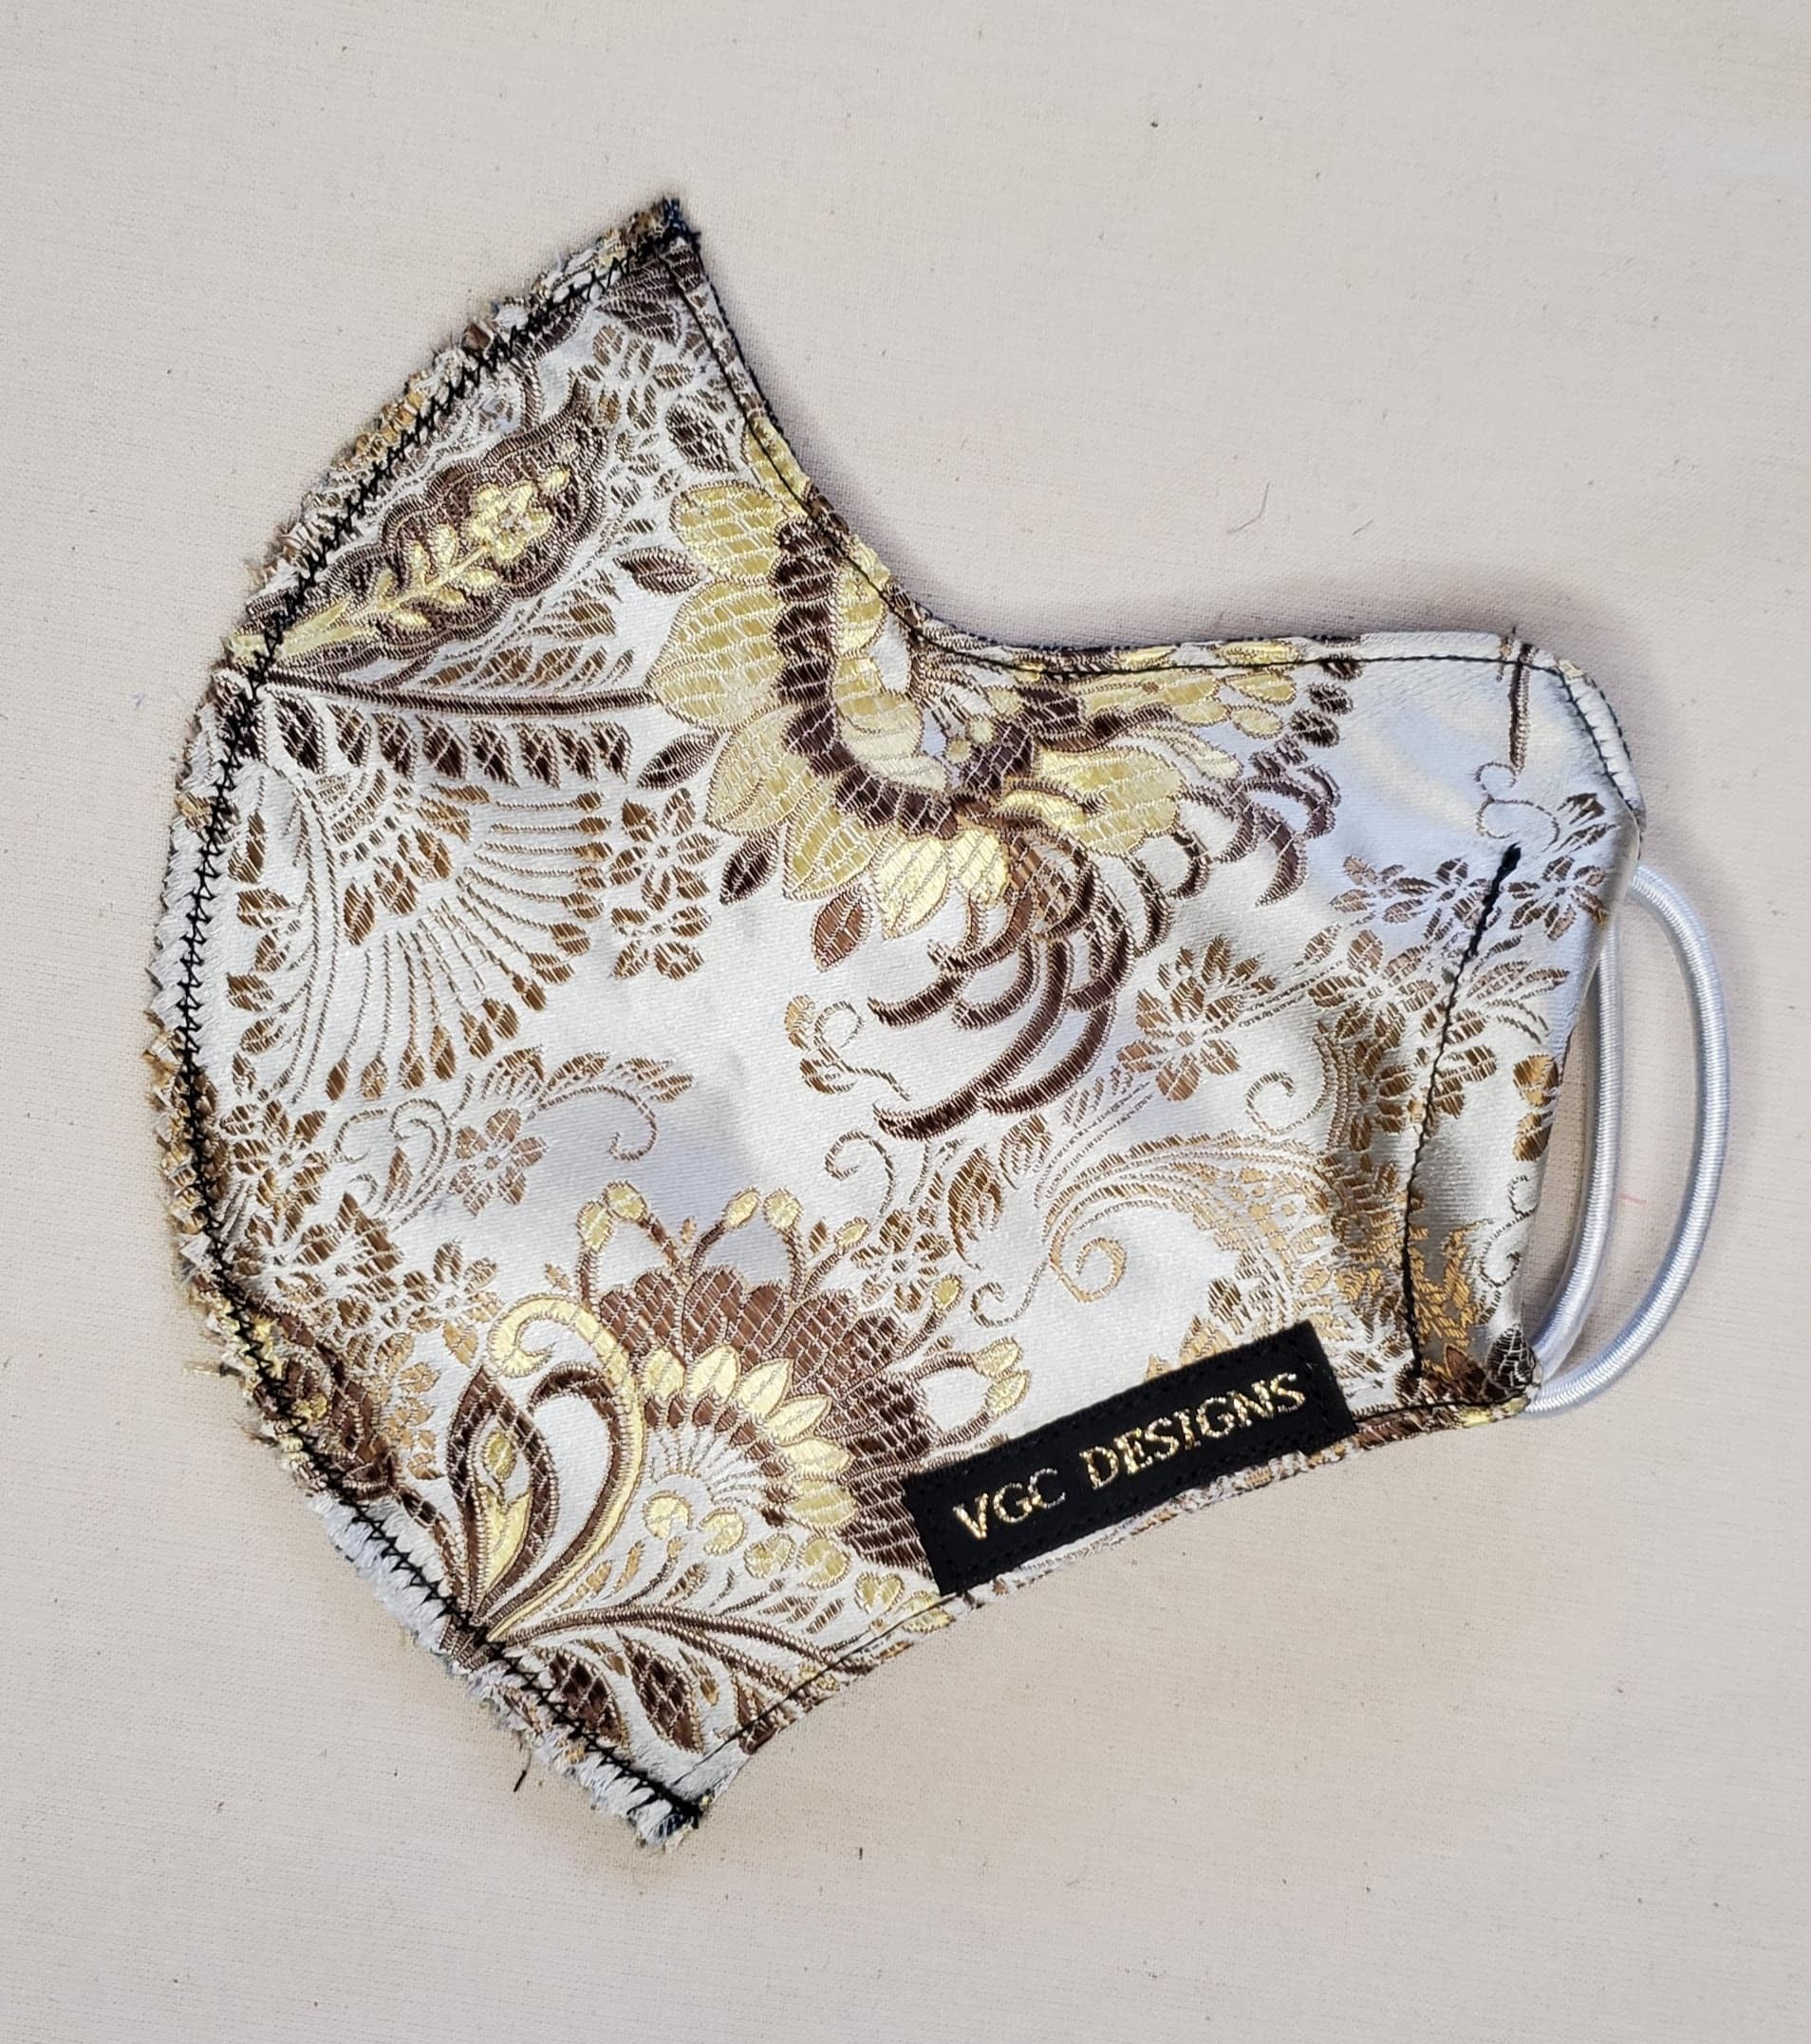 ADULT VGC FACE-MASK BROCADE SILVER GOLD